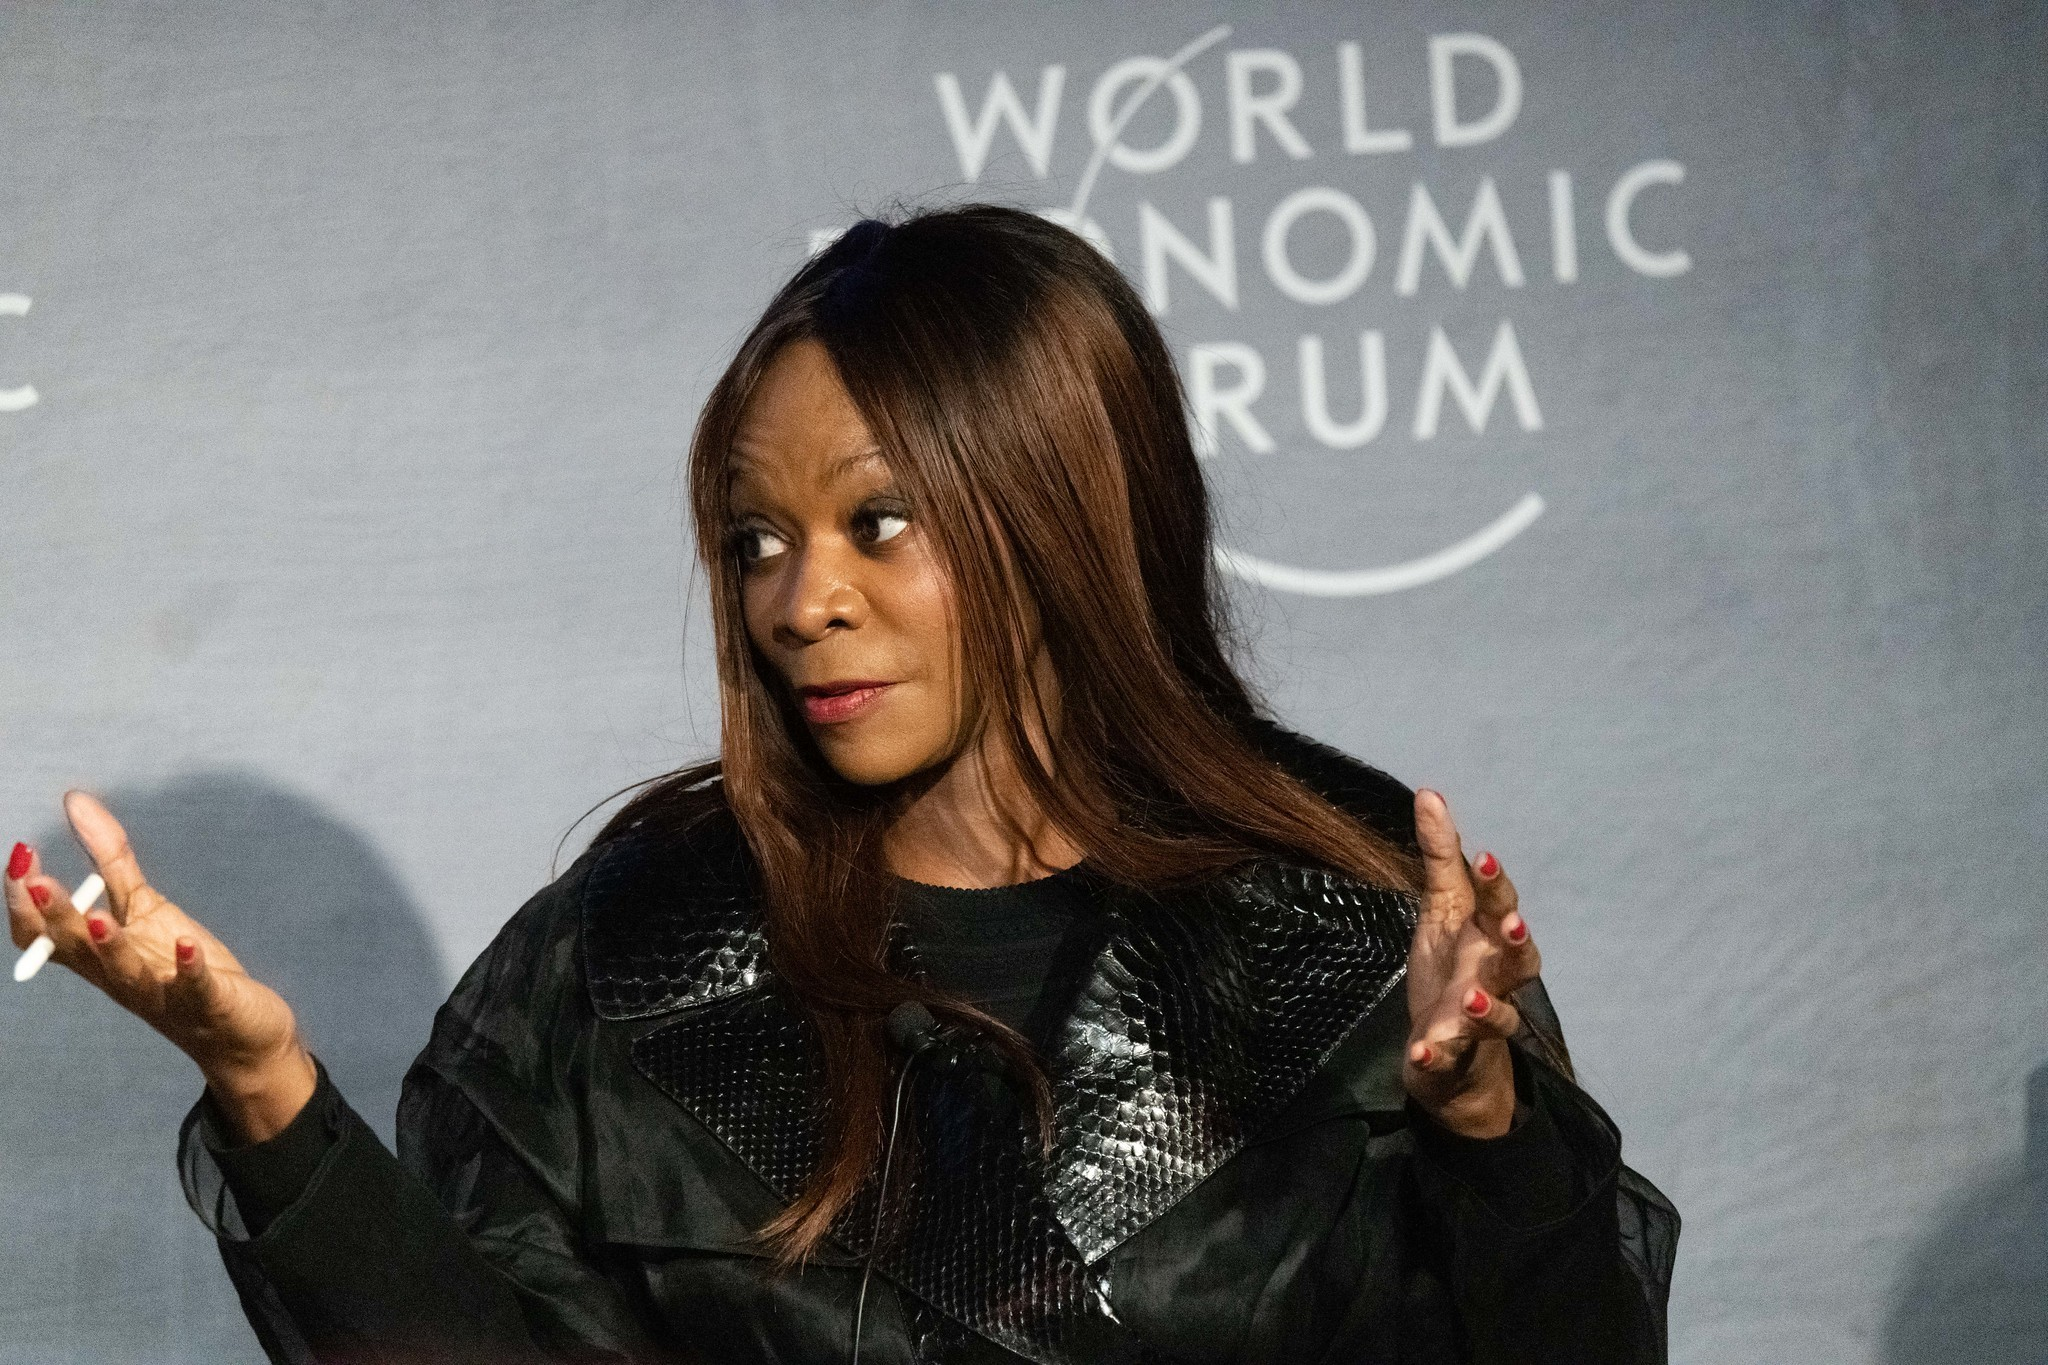 Dambisa Moyo, Global Economist, Mildstorm Group, USA; Young Global Leader, speaking in the Democratic Capitalism: Dead End or Shared Destiny? session at the World Economic Forum Annual Meeting 2020 in Davos-Klosters, Switzerland, 23 January. Congress Centre - Spotlight. Copyright by World Economic Forum/Mattias Nutt